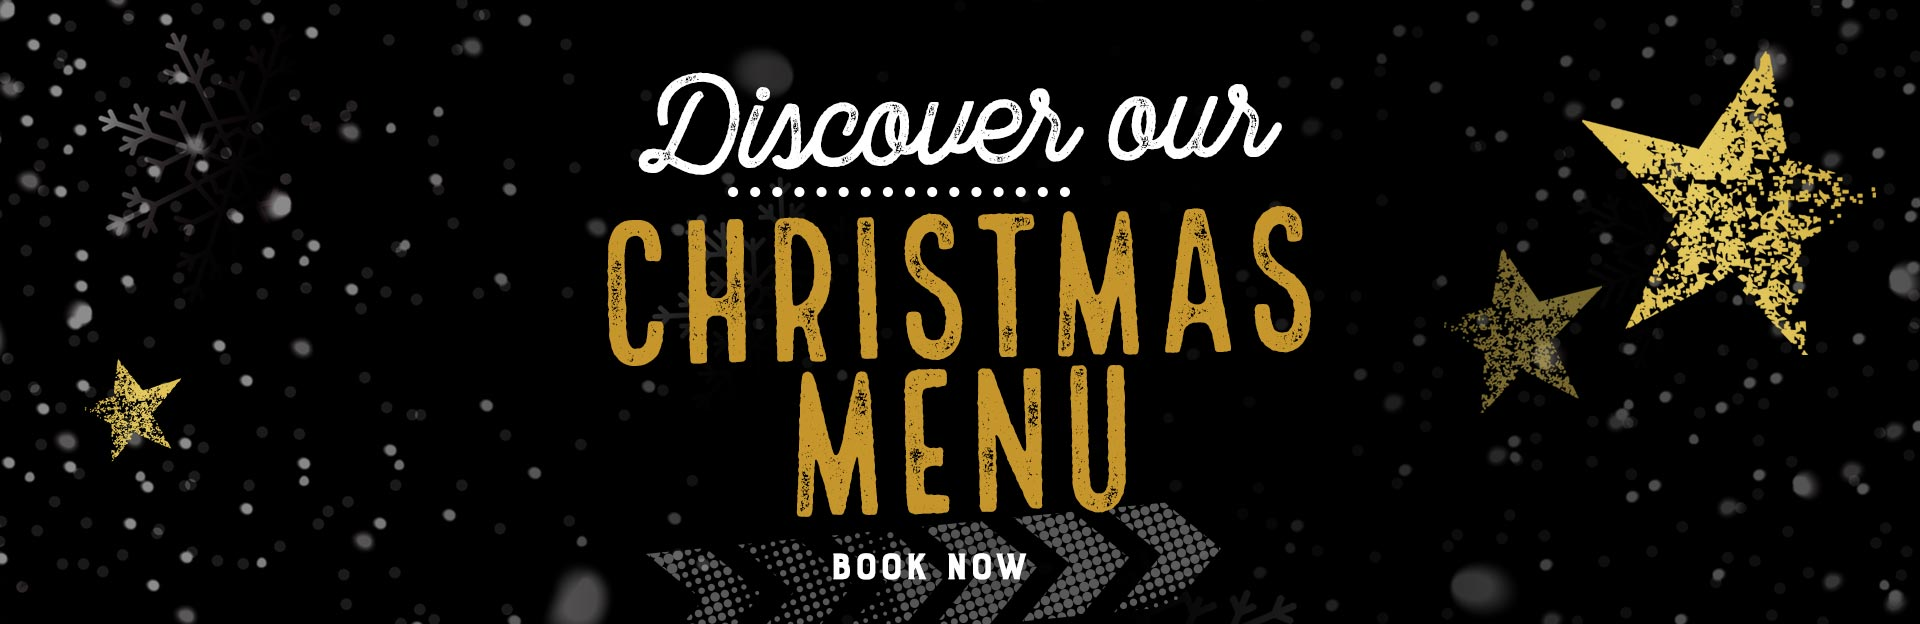 Craic it up this Christmas at The Nursery Tavern